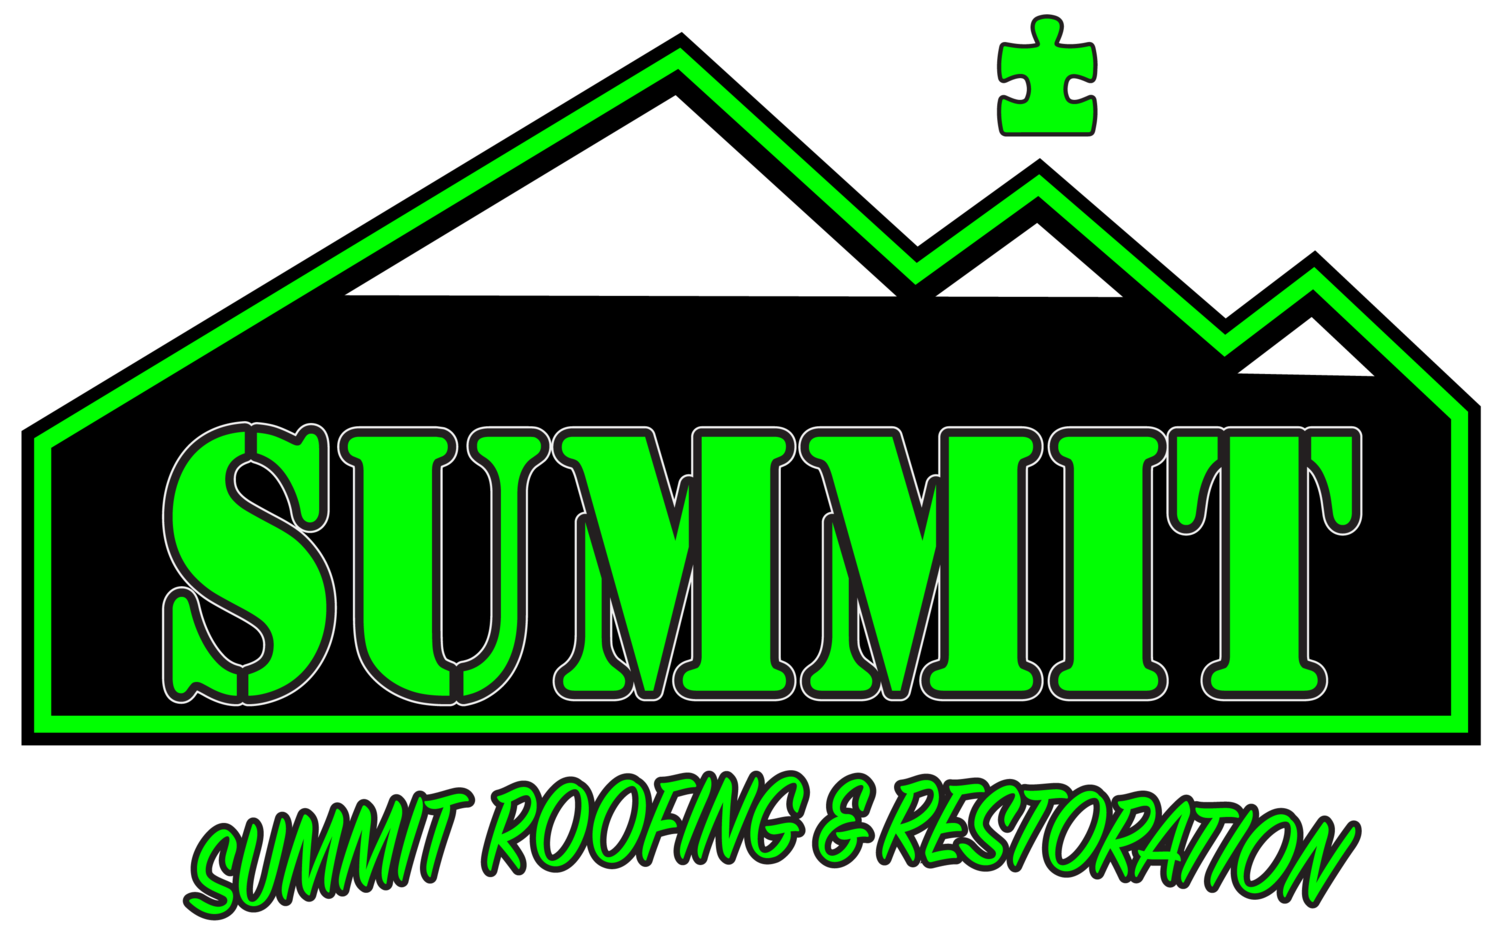 Summit Roofing & Restoration | Roofing Contractor | Local Roofer Near Me